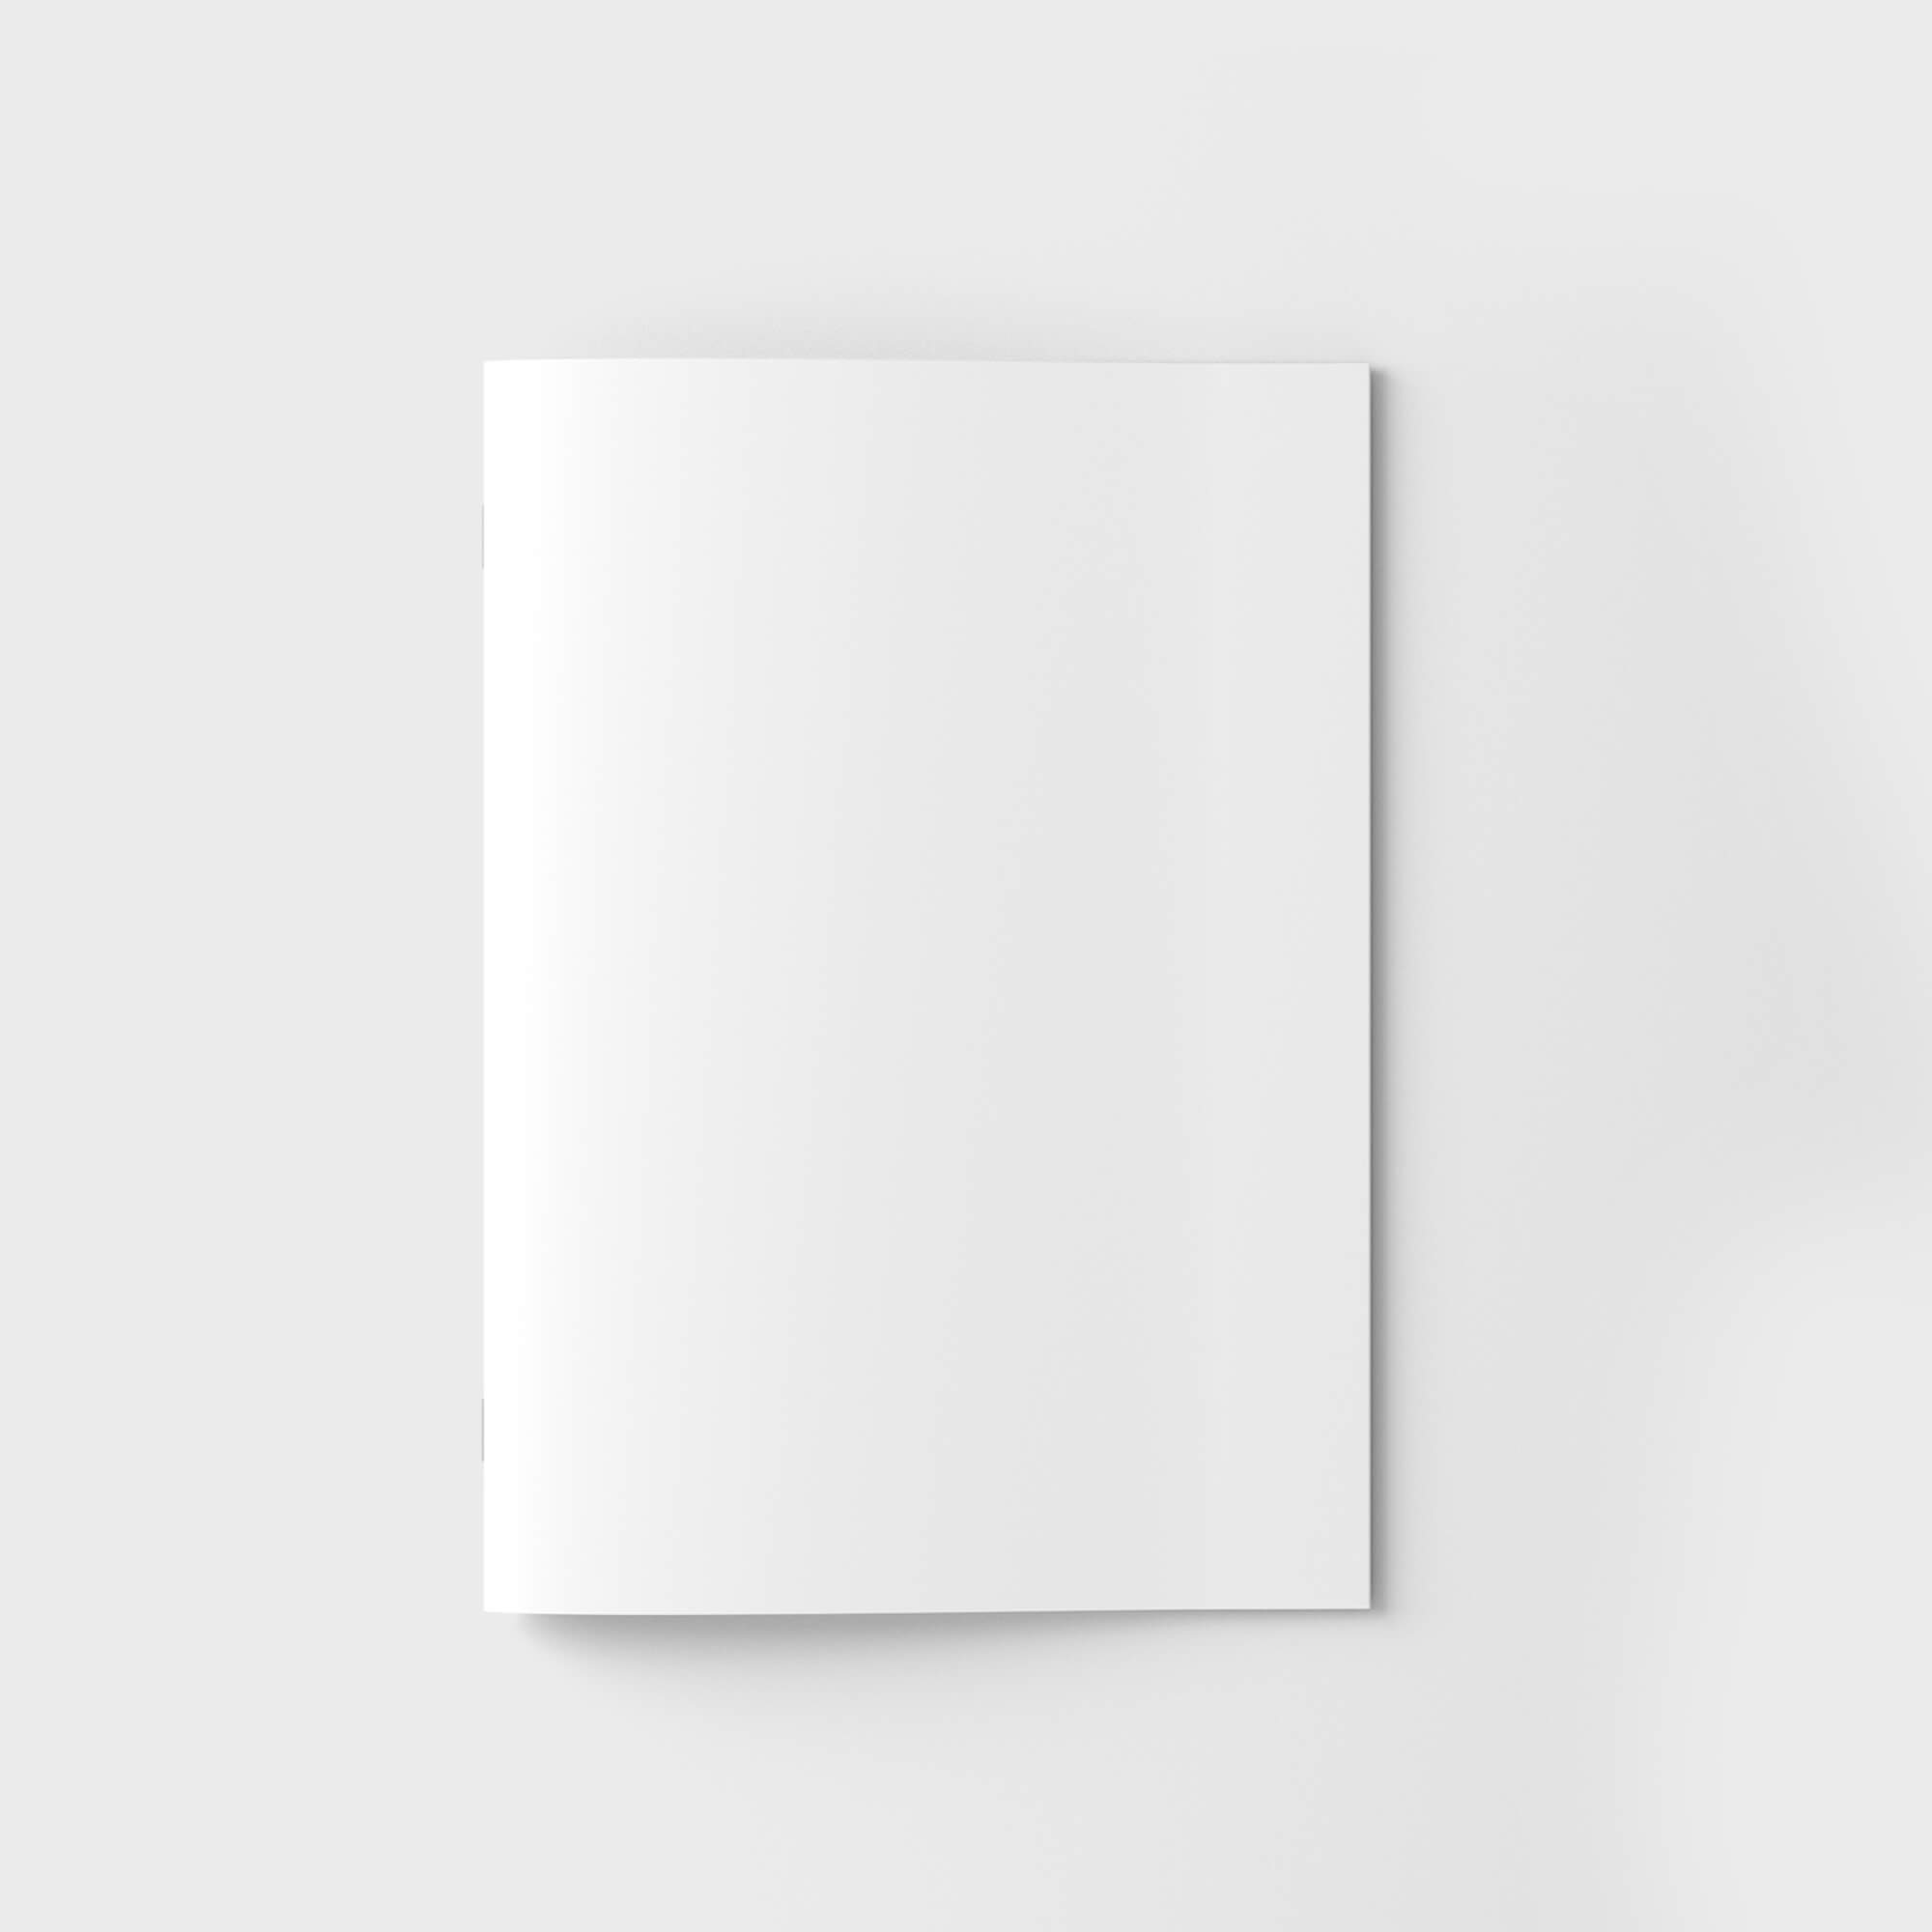 Blank Free Brochure Cover Mockup PSD Template